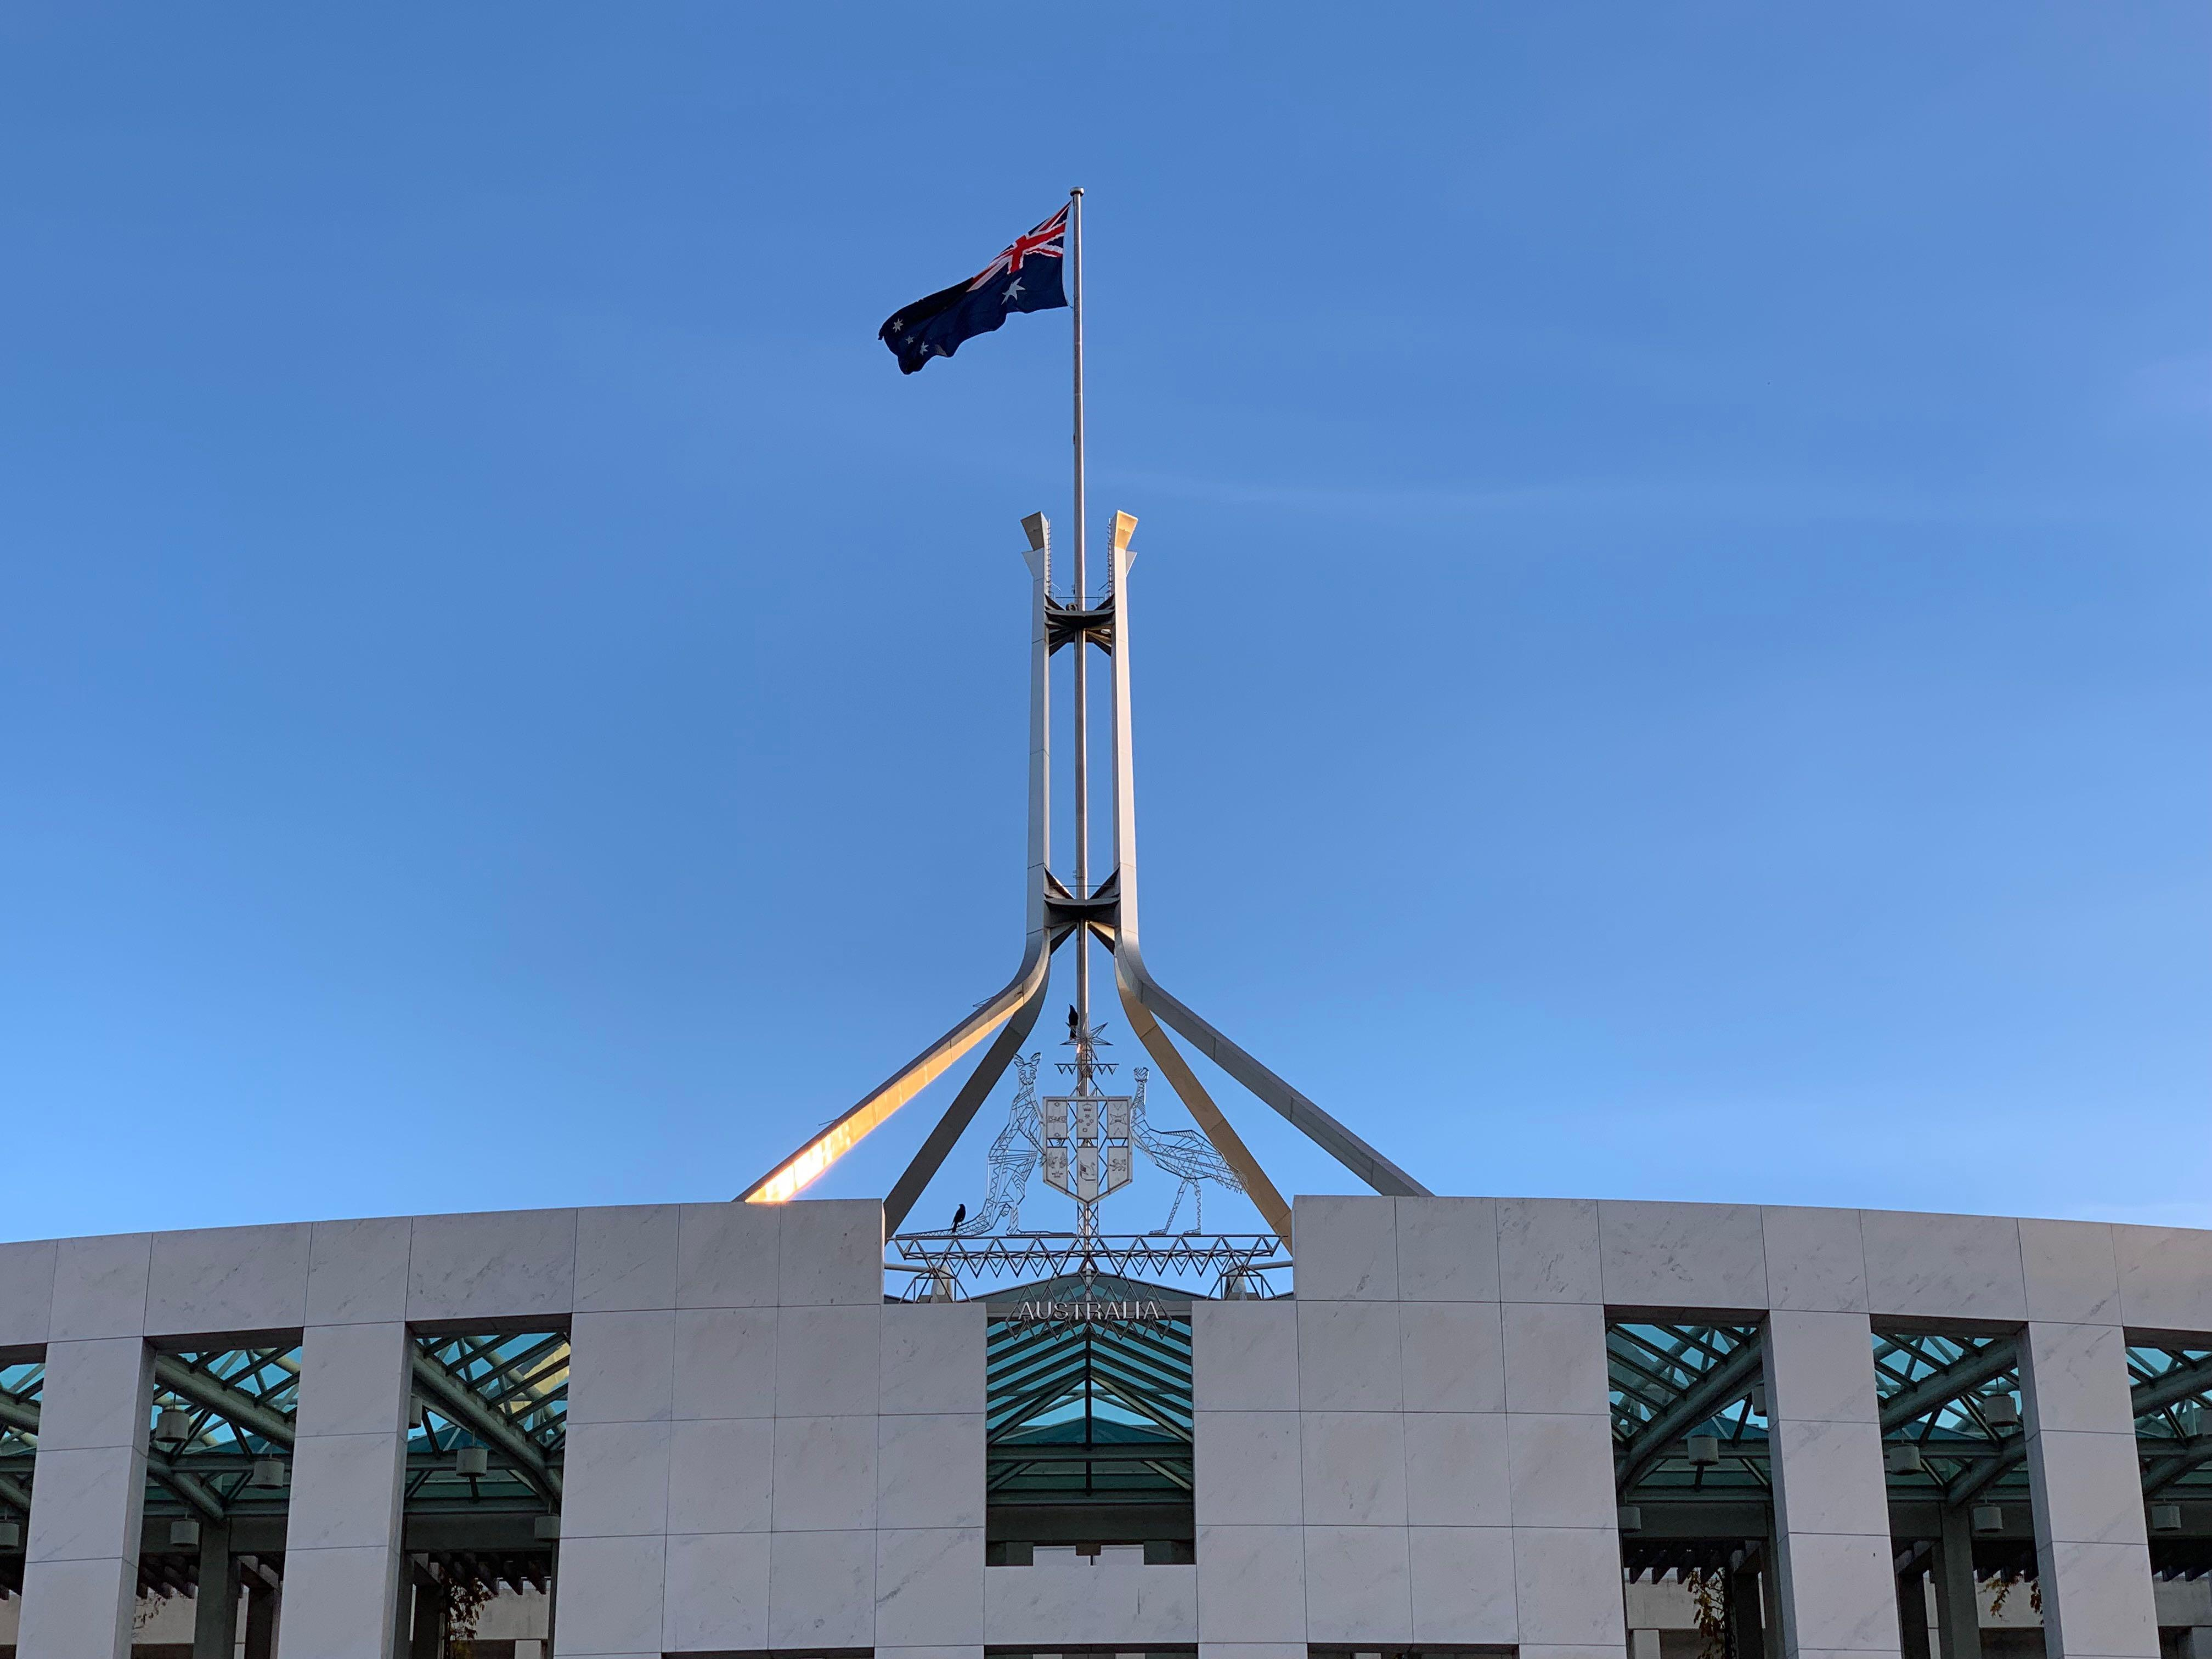 canberra-parliament-house-zoomed.jpg